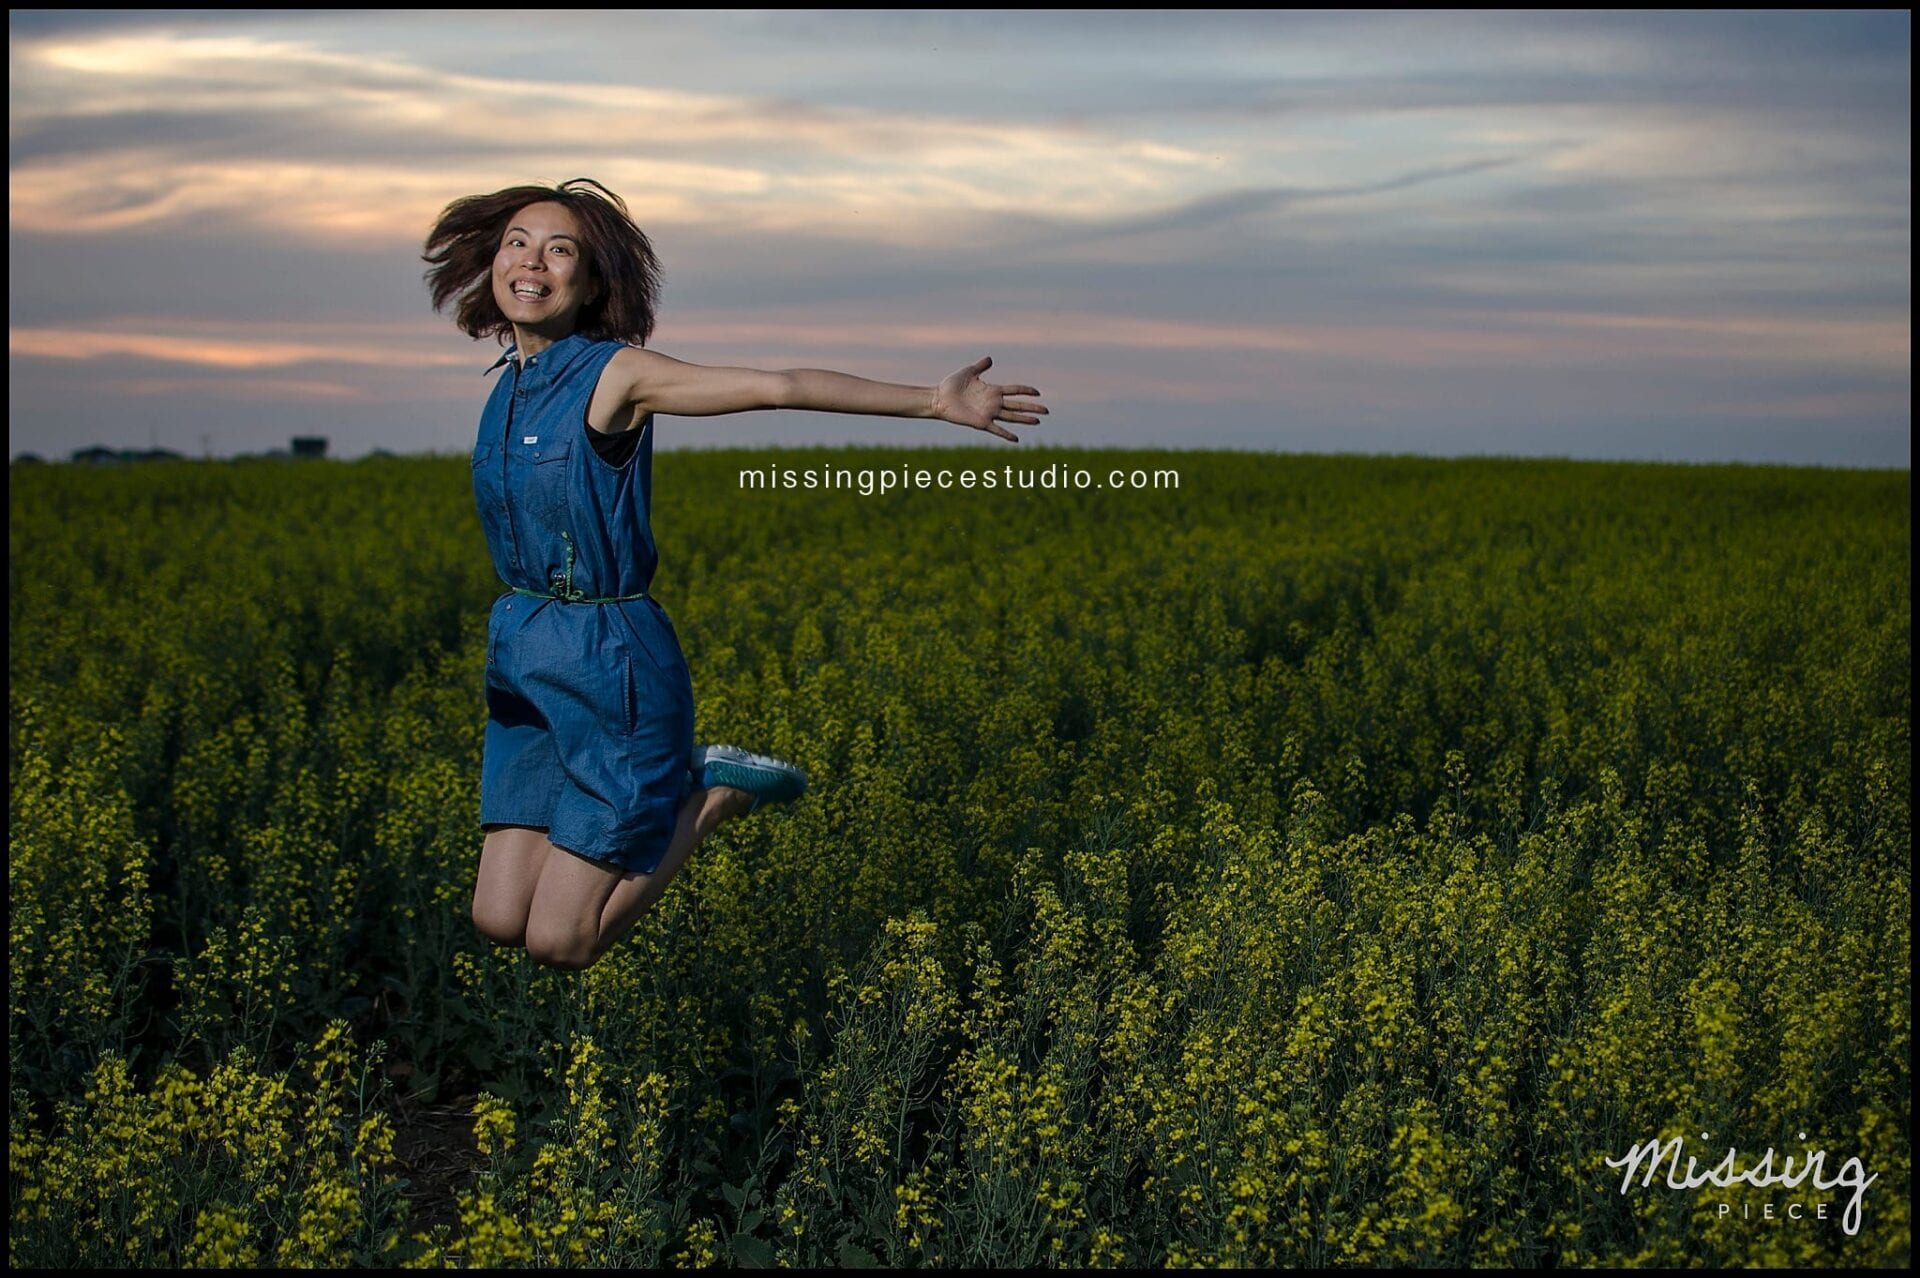 My cousin jumping in a beautiful canola field during sunset. You can see how tall these can go just by the way she jumps! Photo taken with an SB700 and Nikon D7000